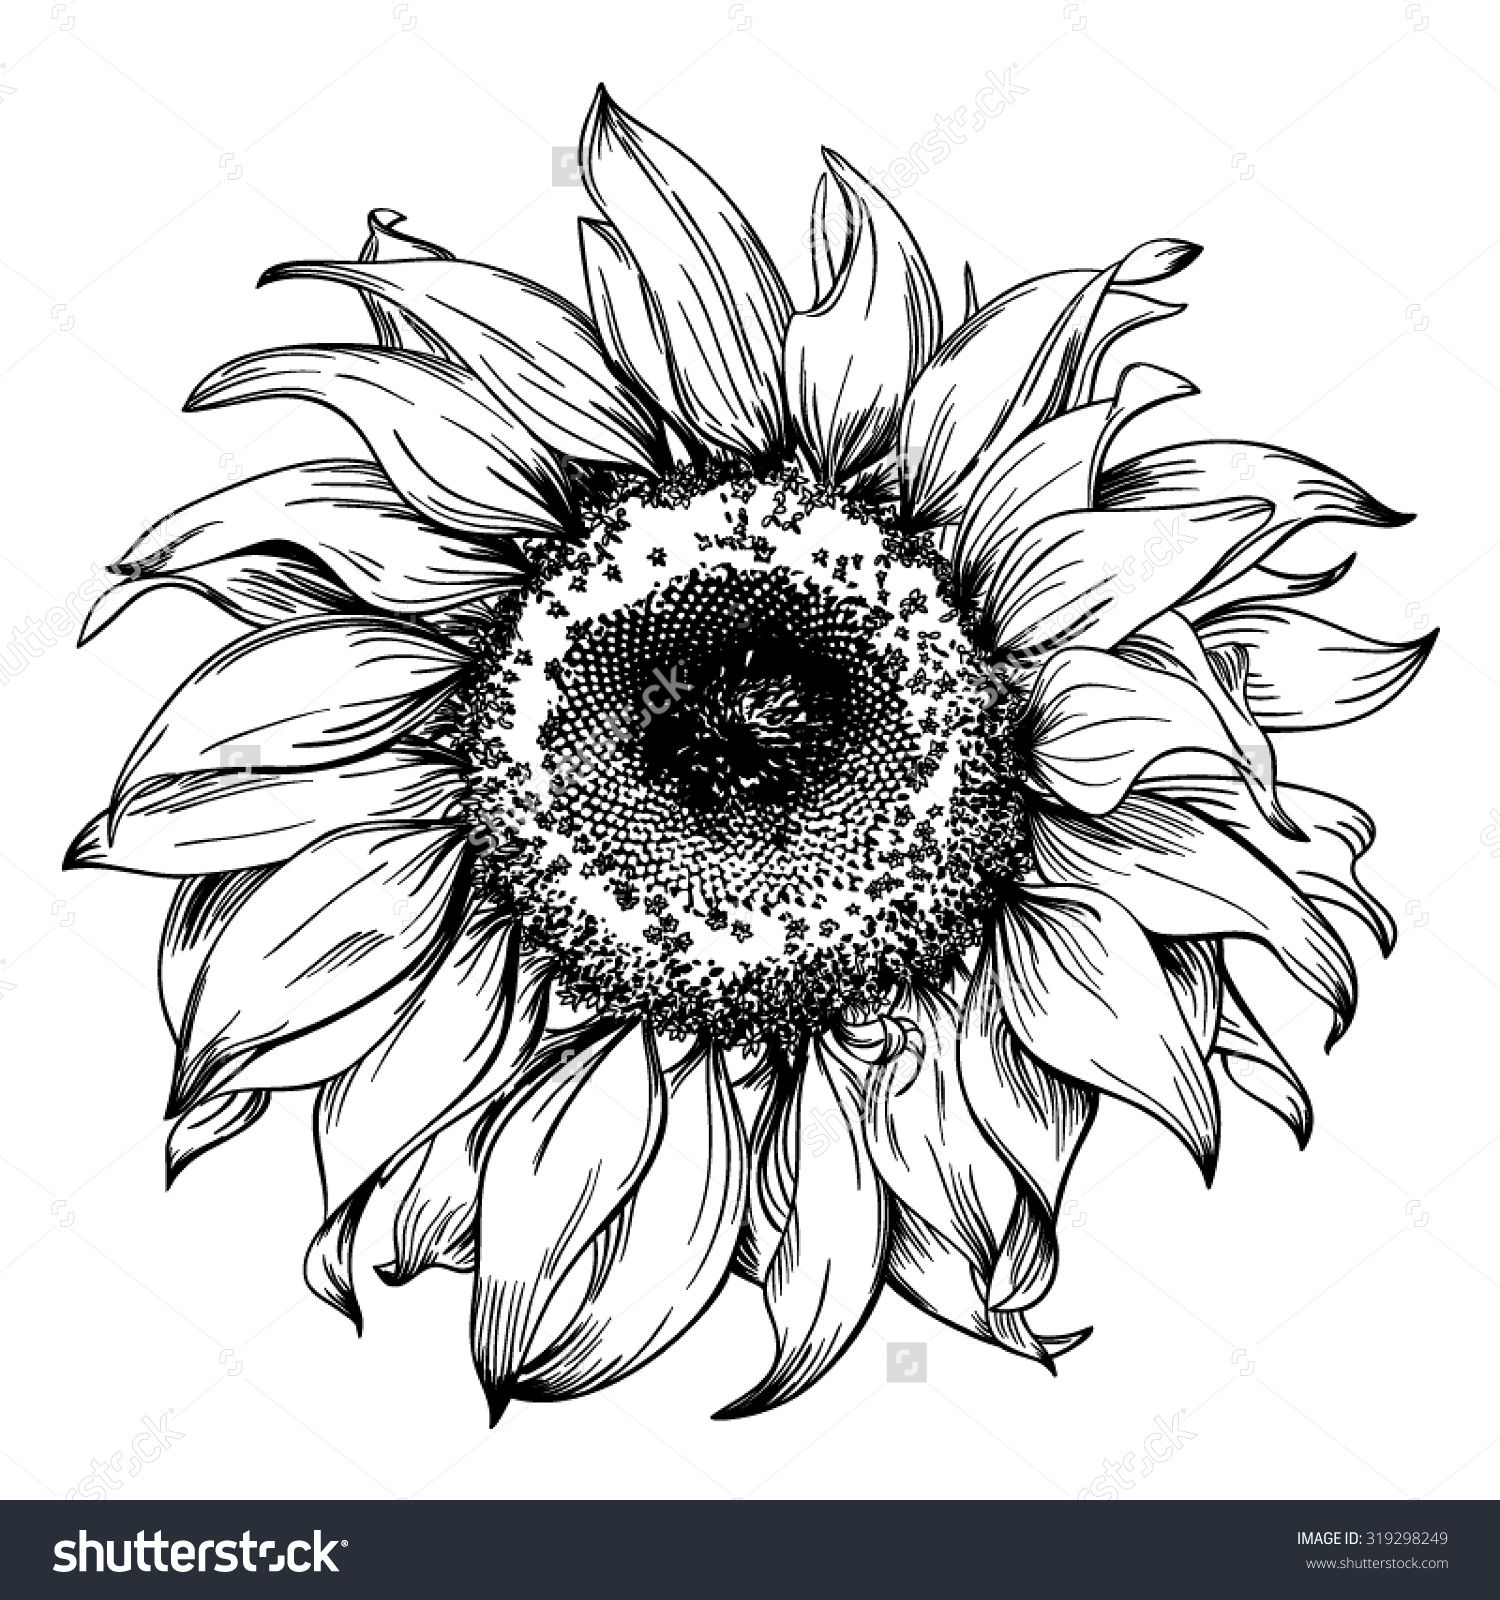 Line Drawing Illustration Artists : Hand drawn realistic vintage sunflower pen and ink drawing